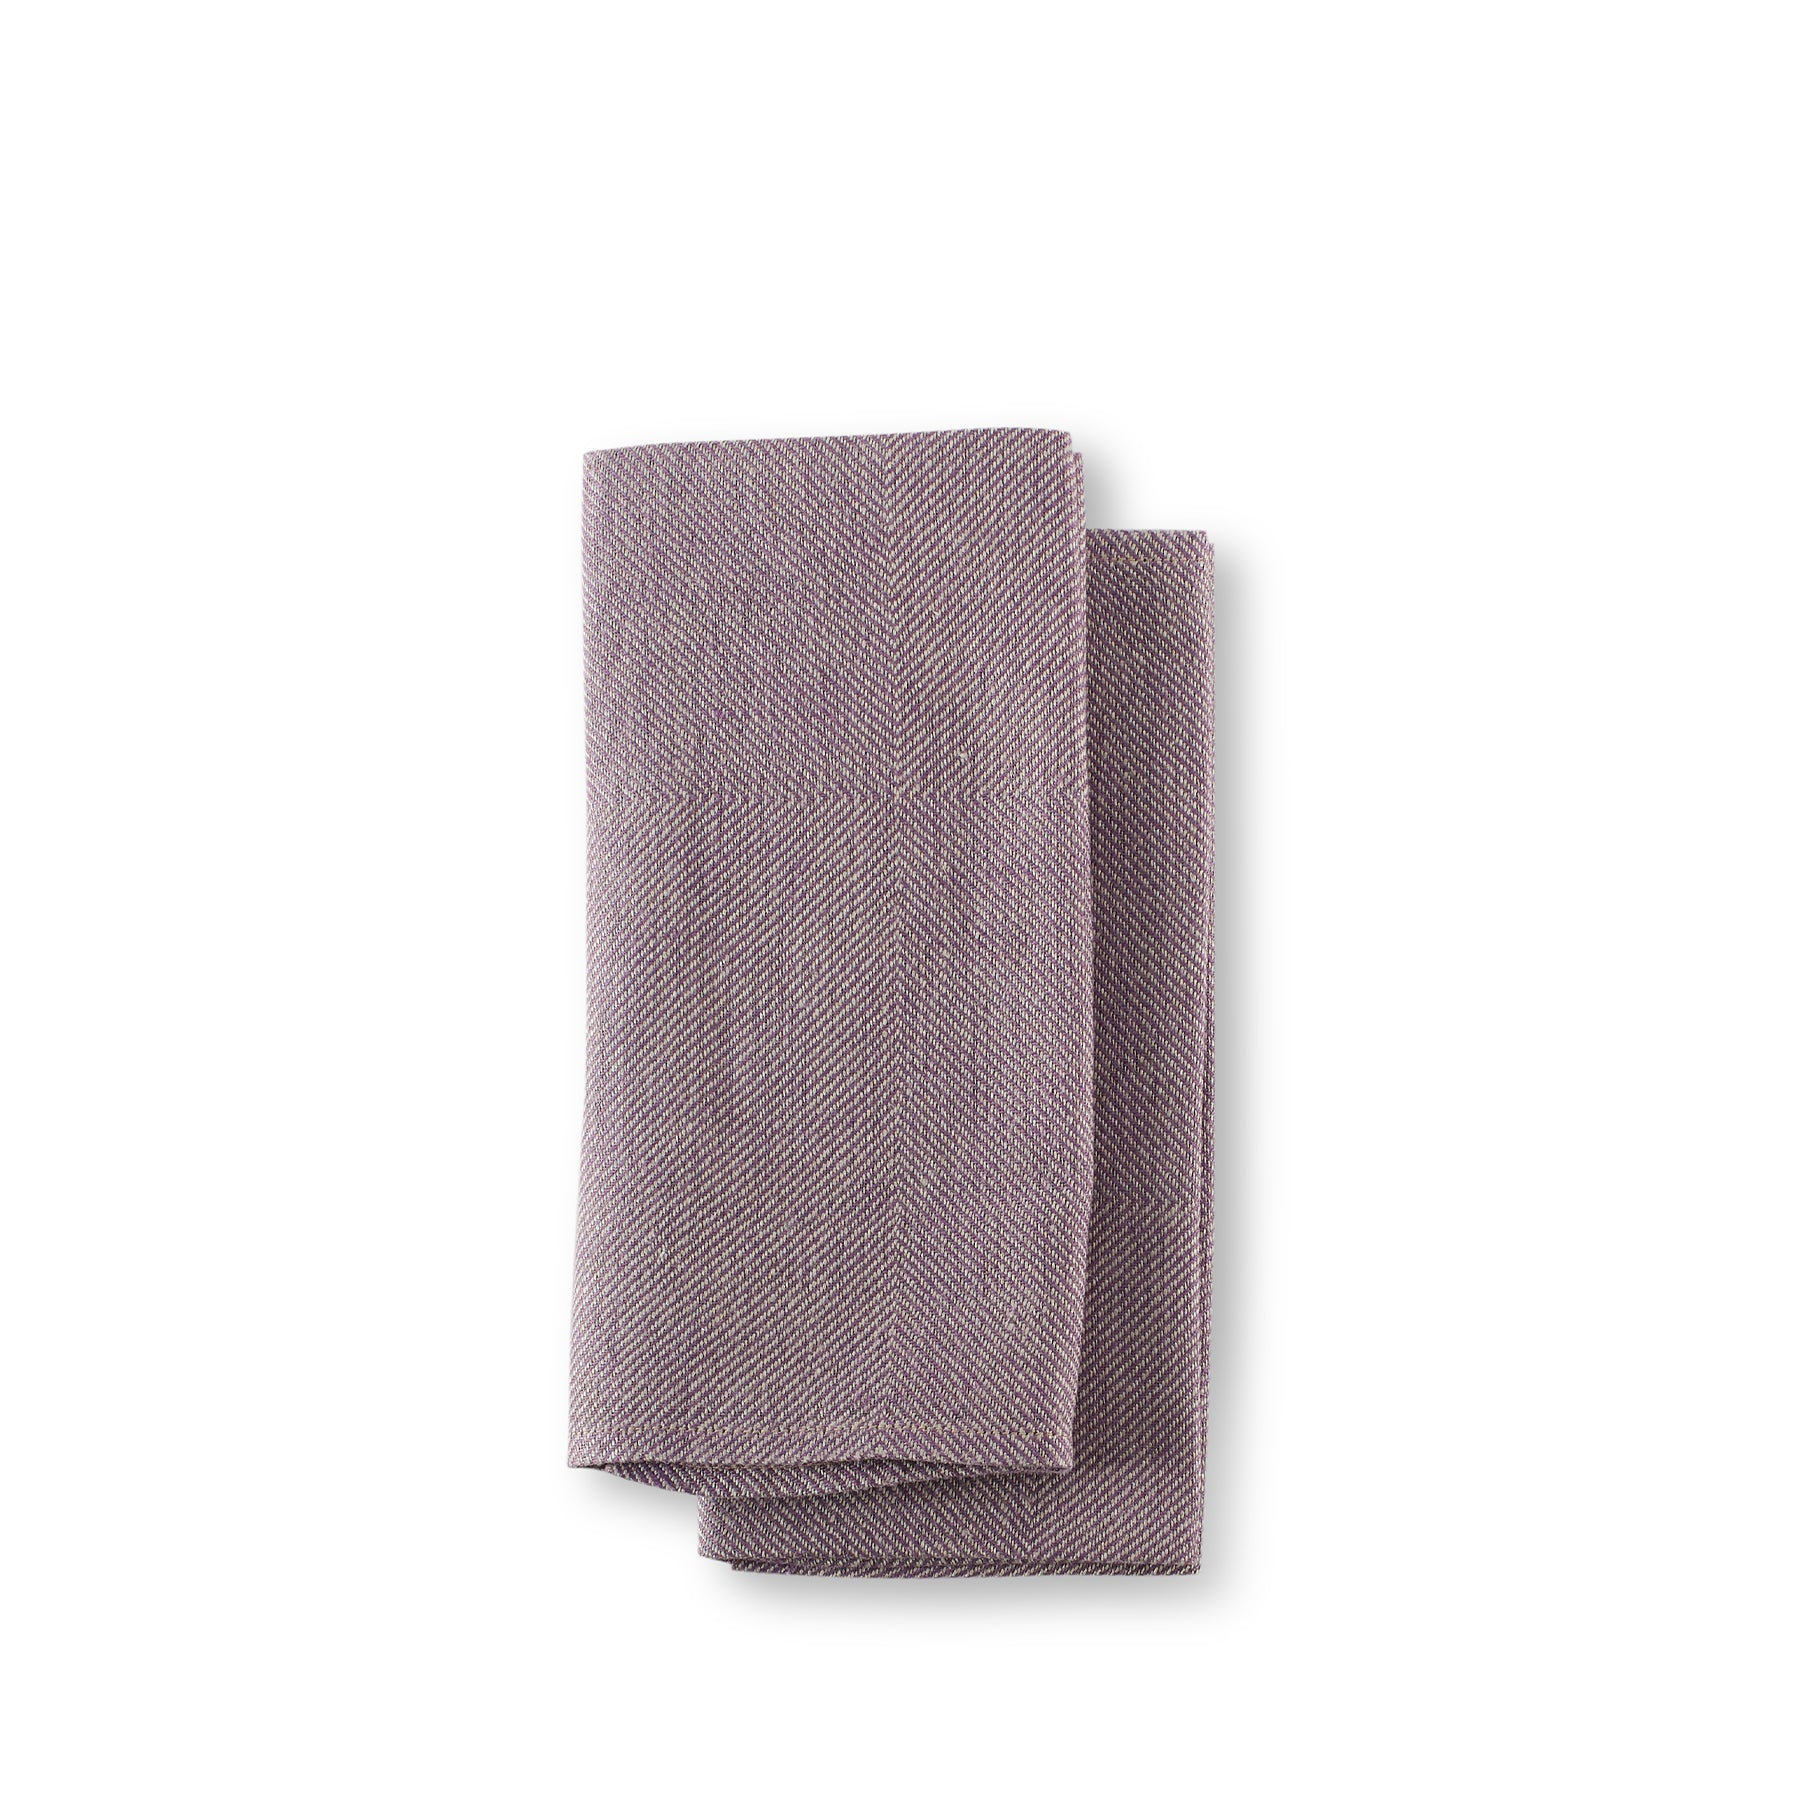 Kypert Napkins in Lilac (Set of 2) Zoom Image 1